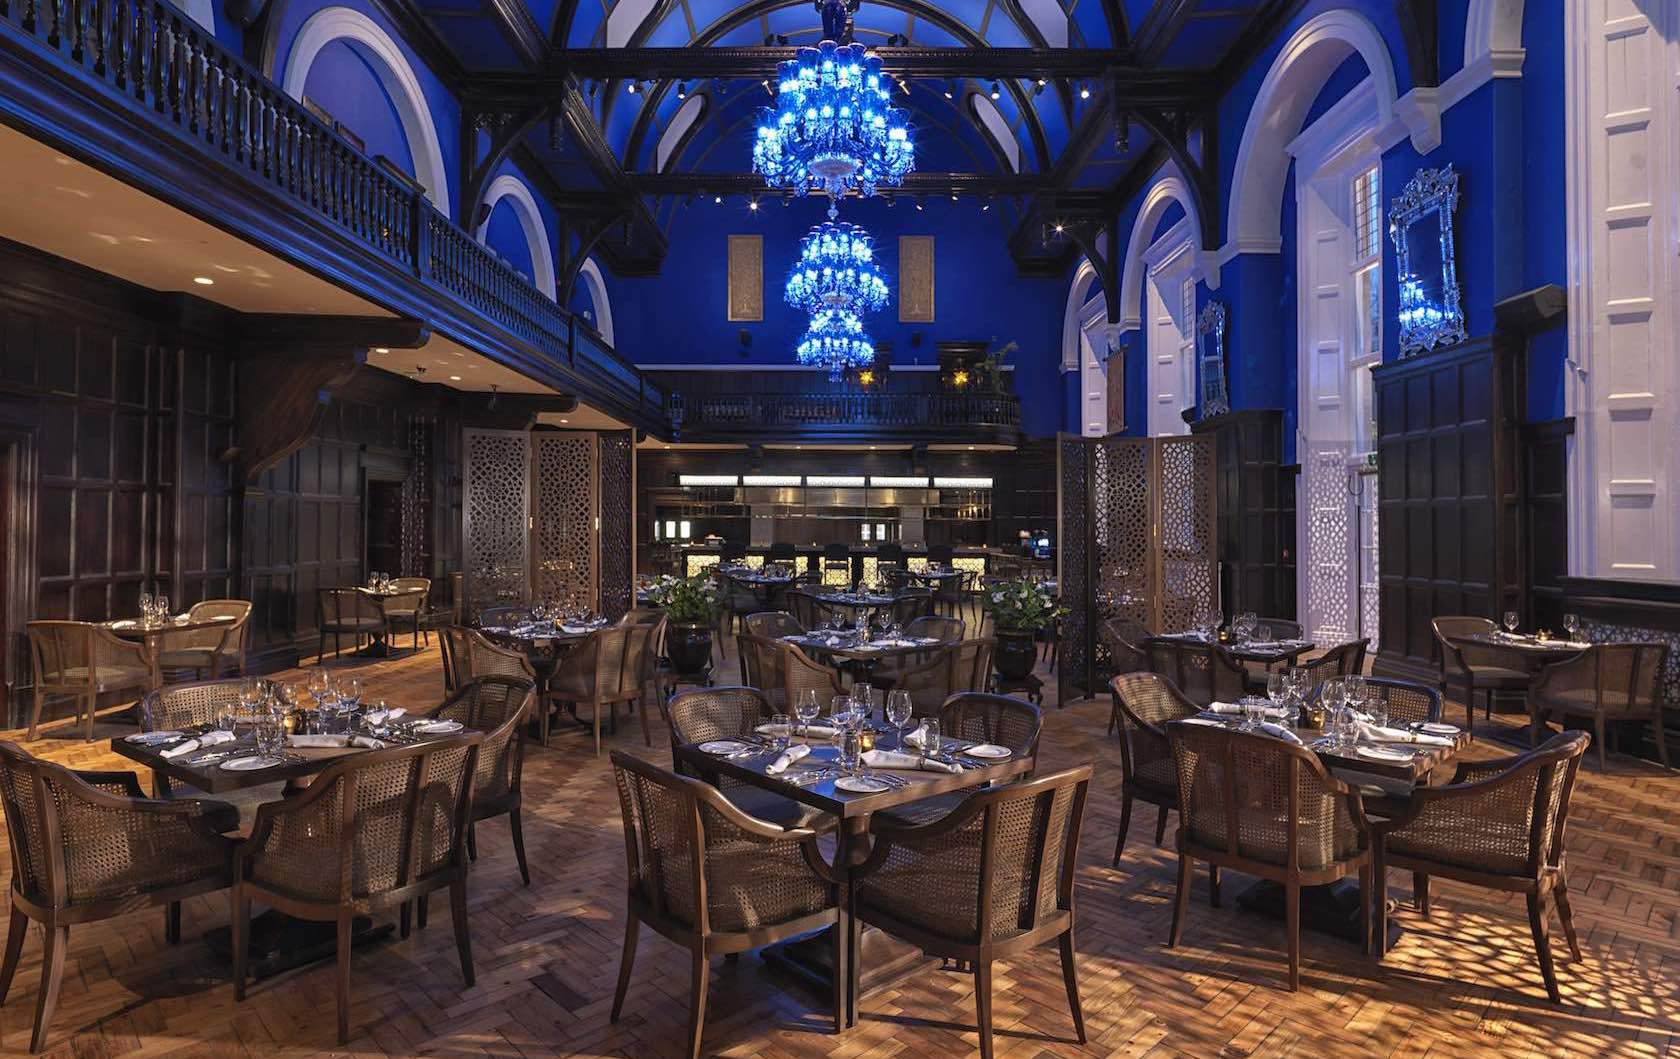 London's Best Indian Restaurants by London Perfect